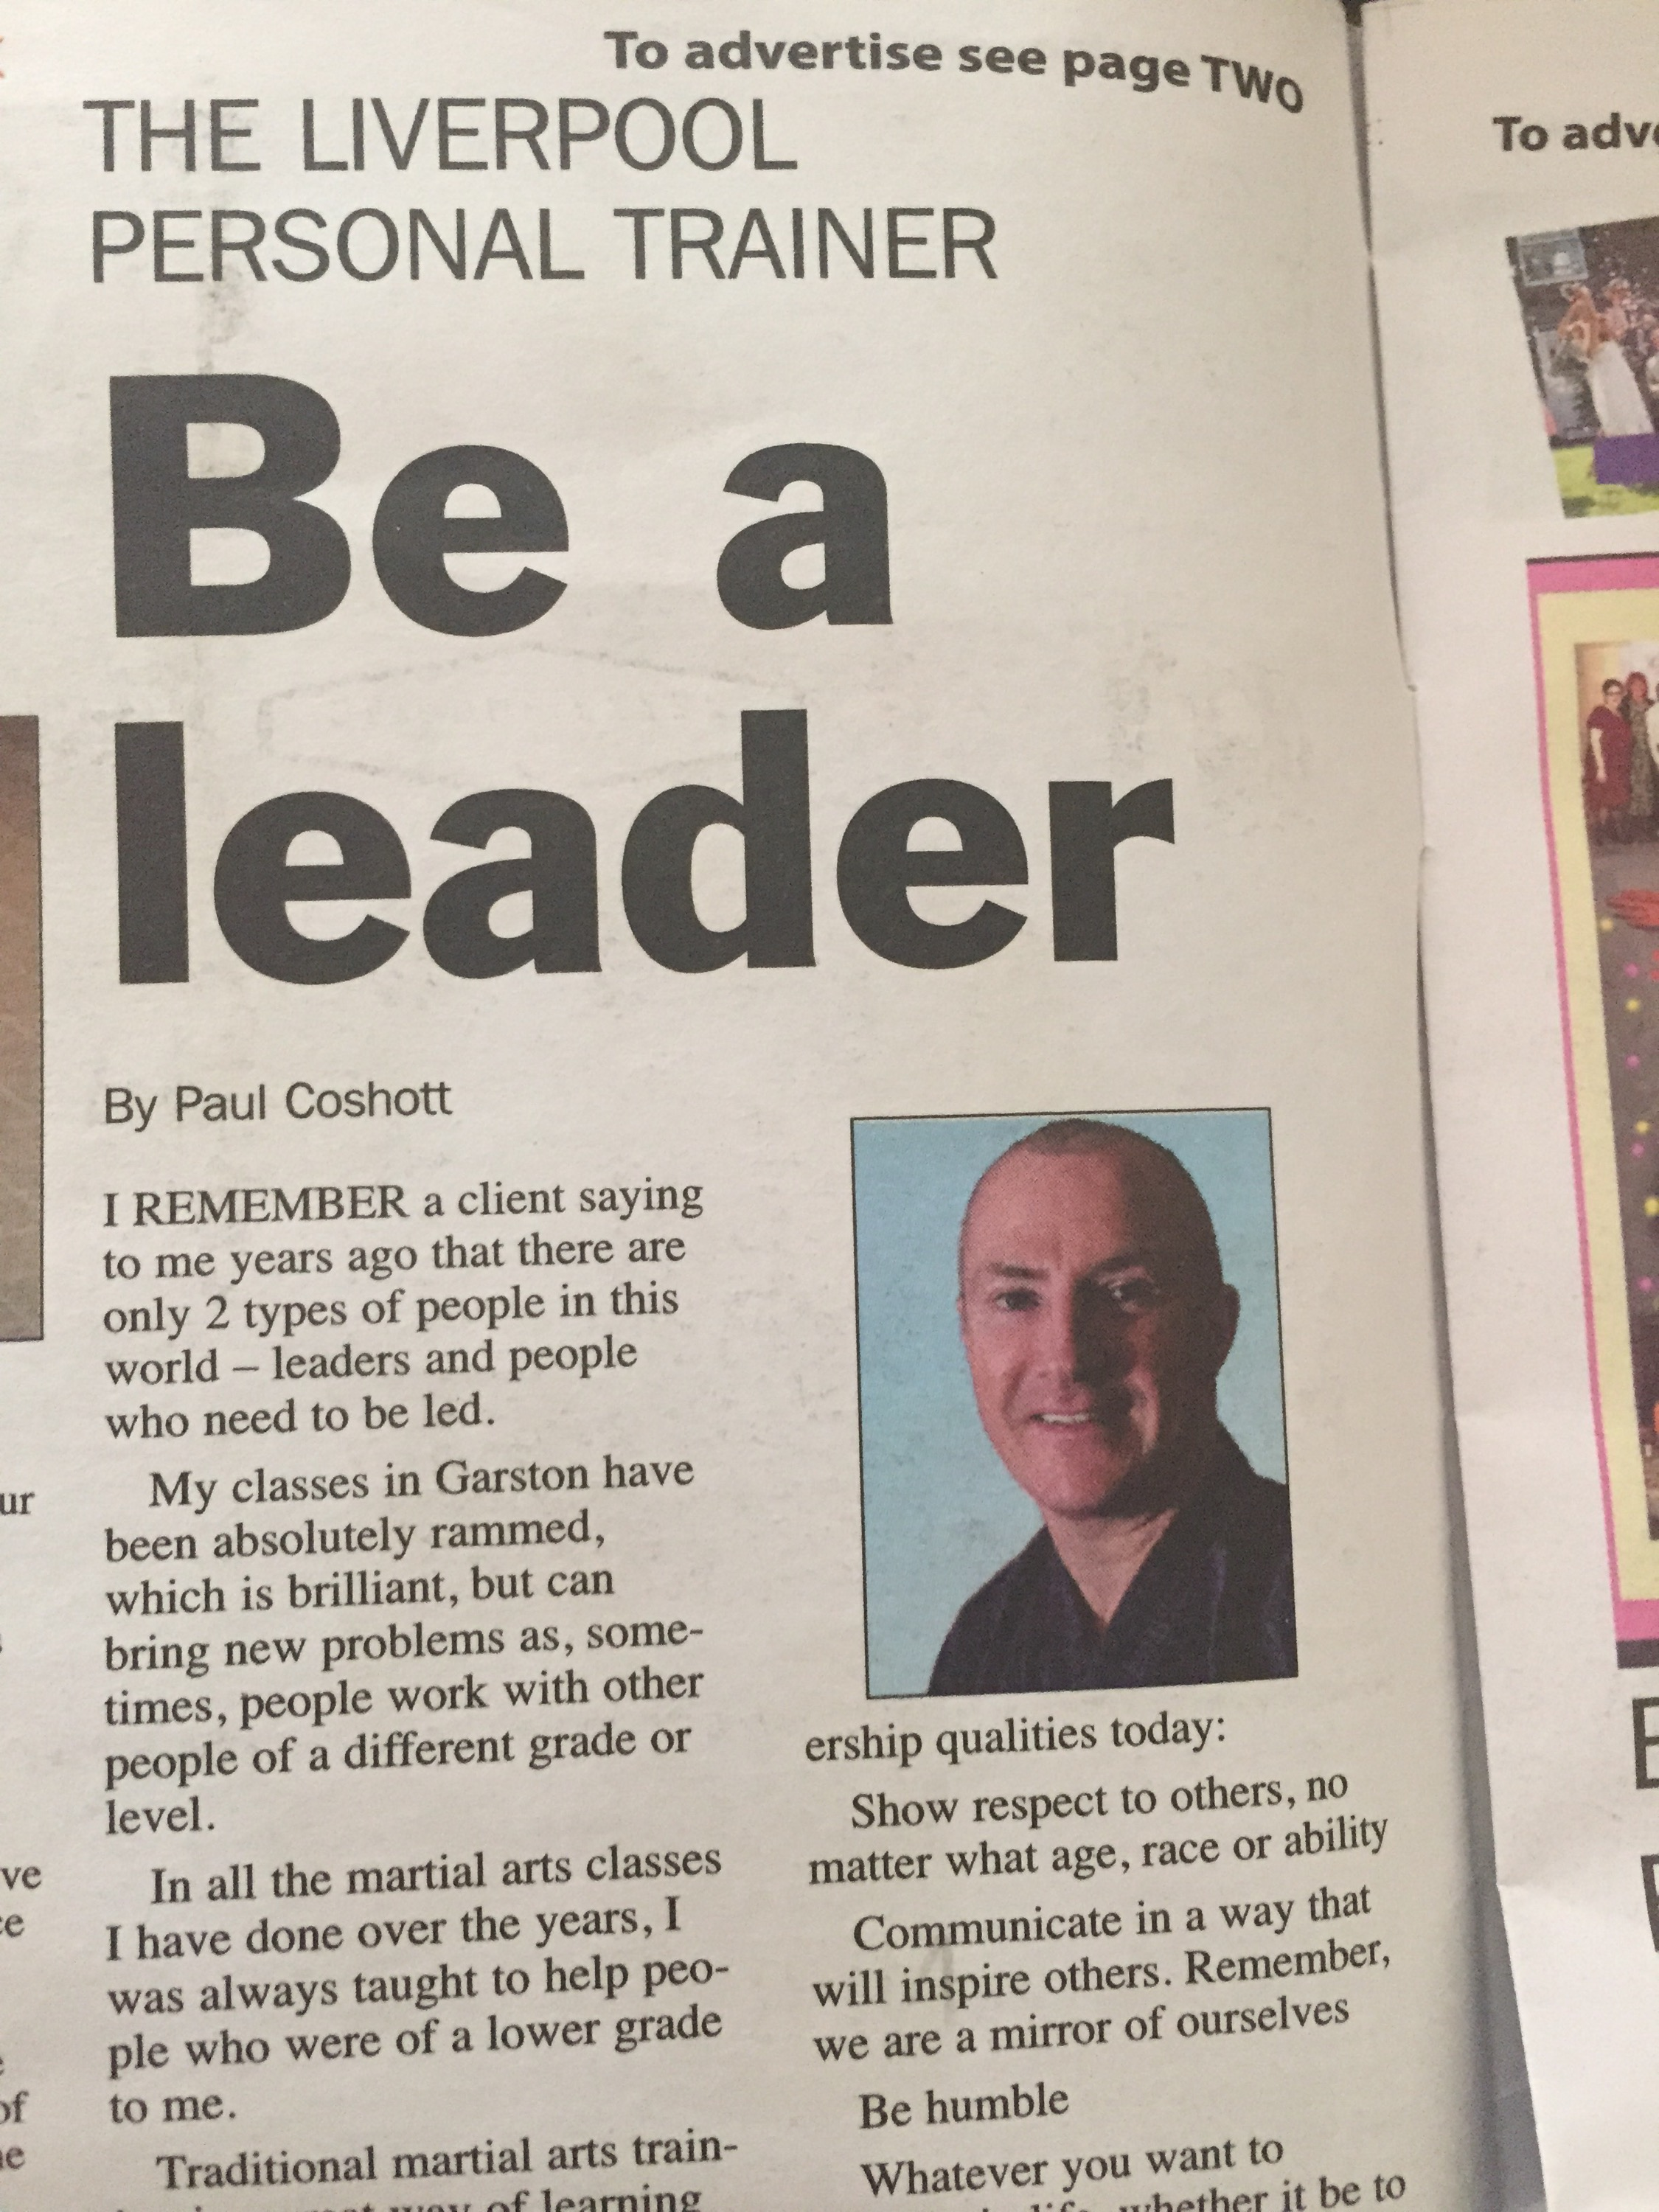 My latest Newspaper article